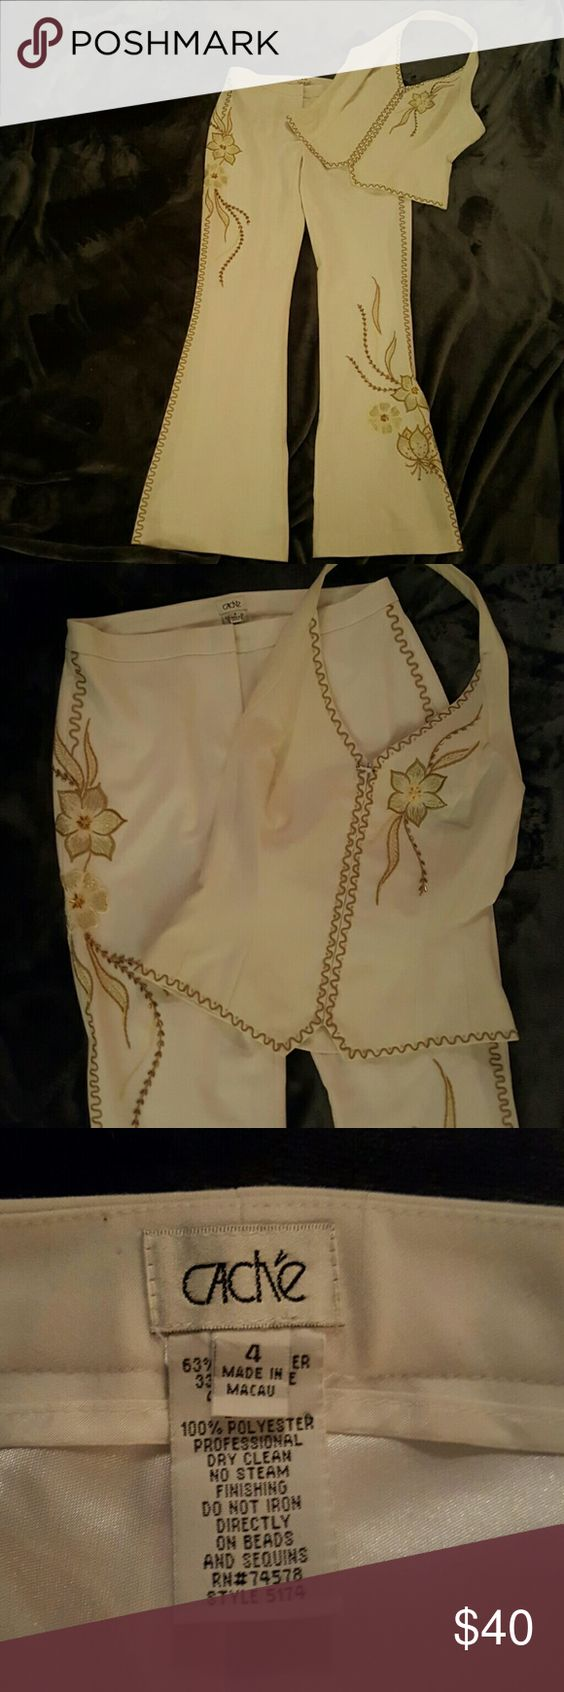 Cache 2 peice Halter and Pants Beautiful white with gold beading and embroidery halter pant suit. Some wear on zipper on halter. Top was worn more than bottoms (really nice with jeans!) Can be purchased separately. Top also seems a tad darker. Cache Pants